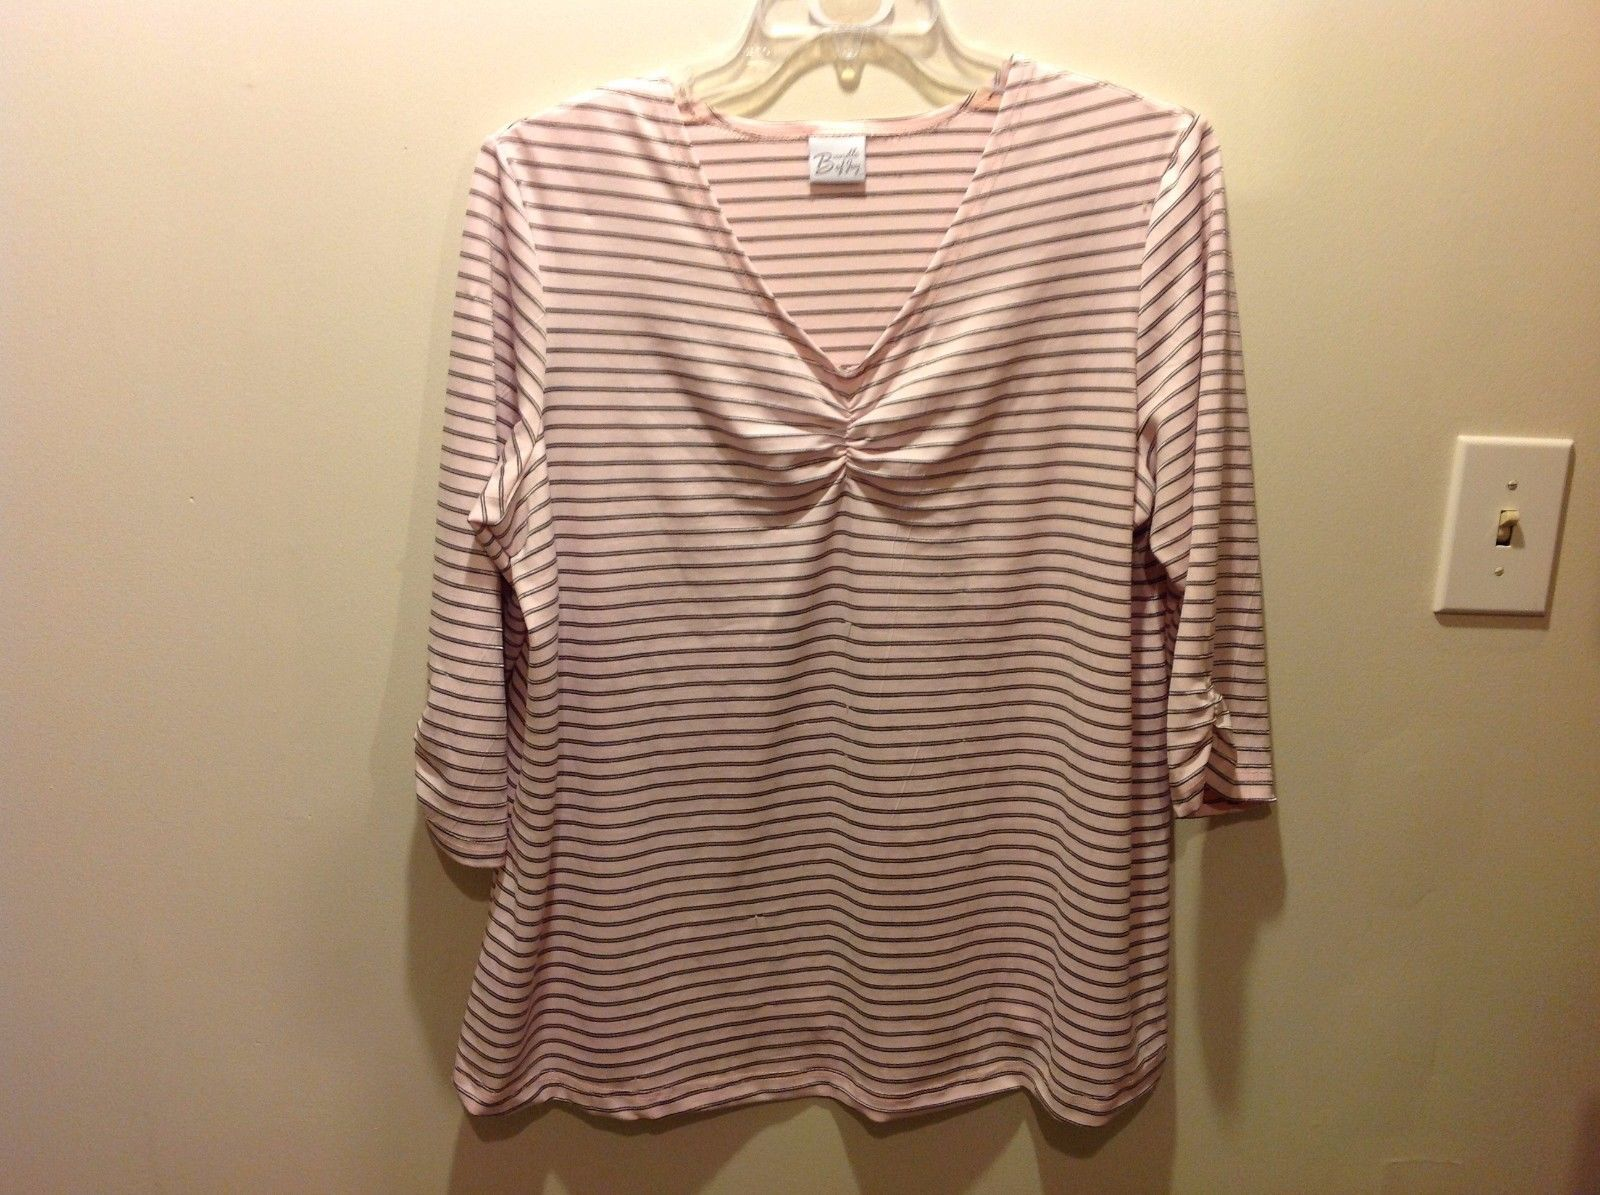 Bundle Of Joy Textured Pale Pink Horizontally Striped 3/4 Sleeve V-Neck Top